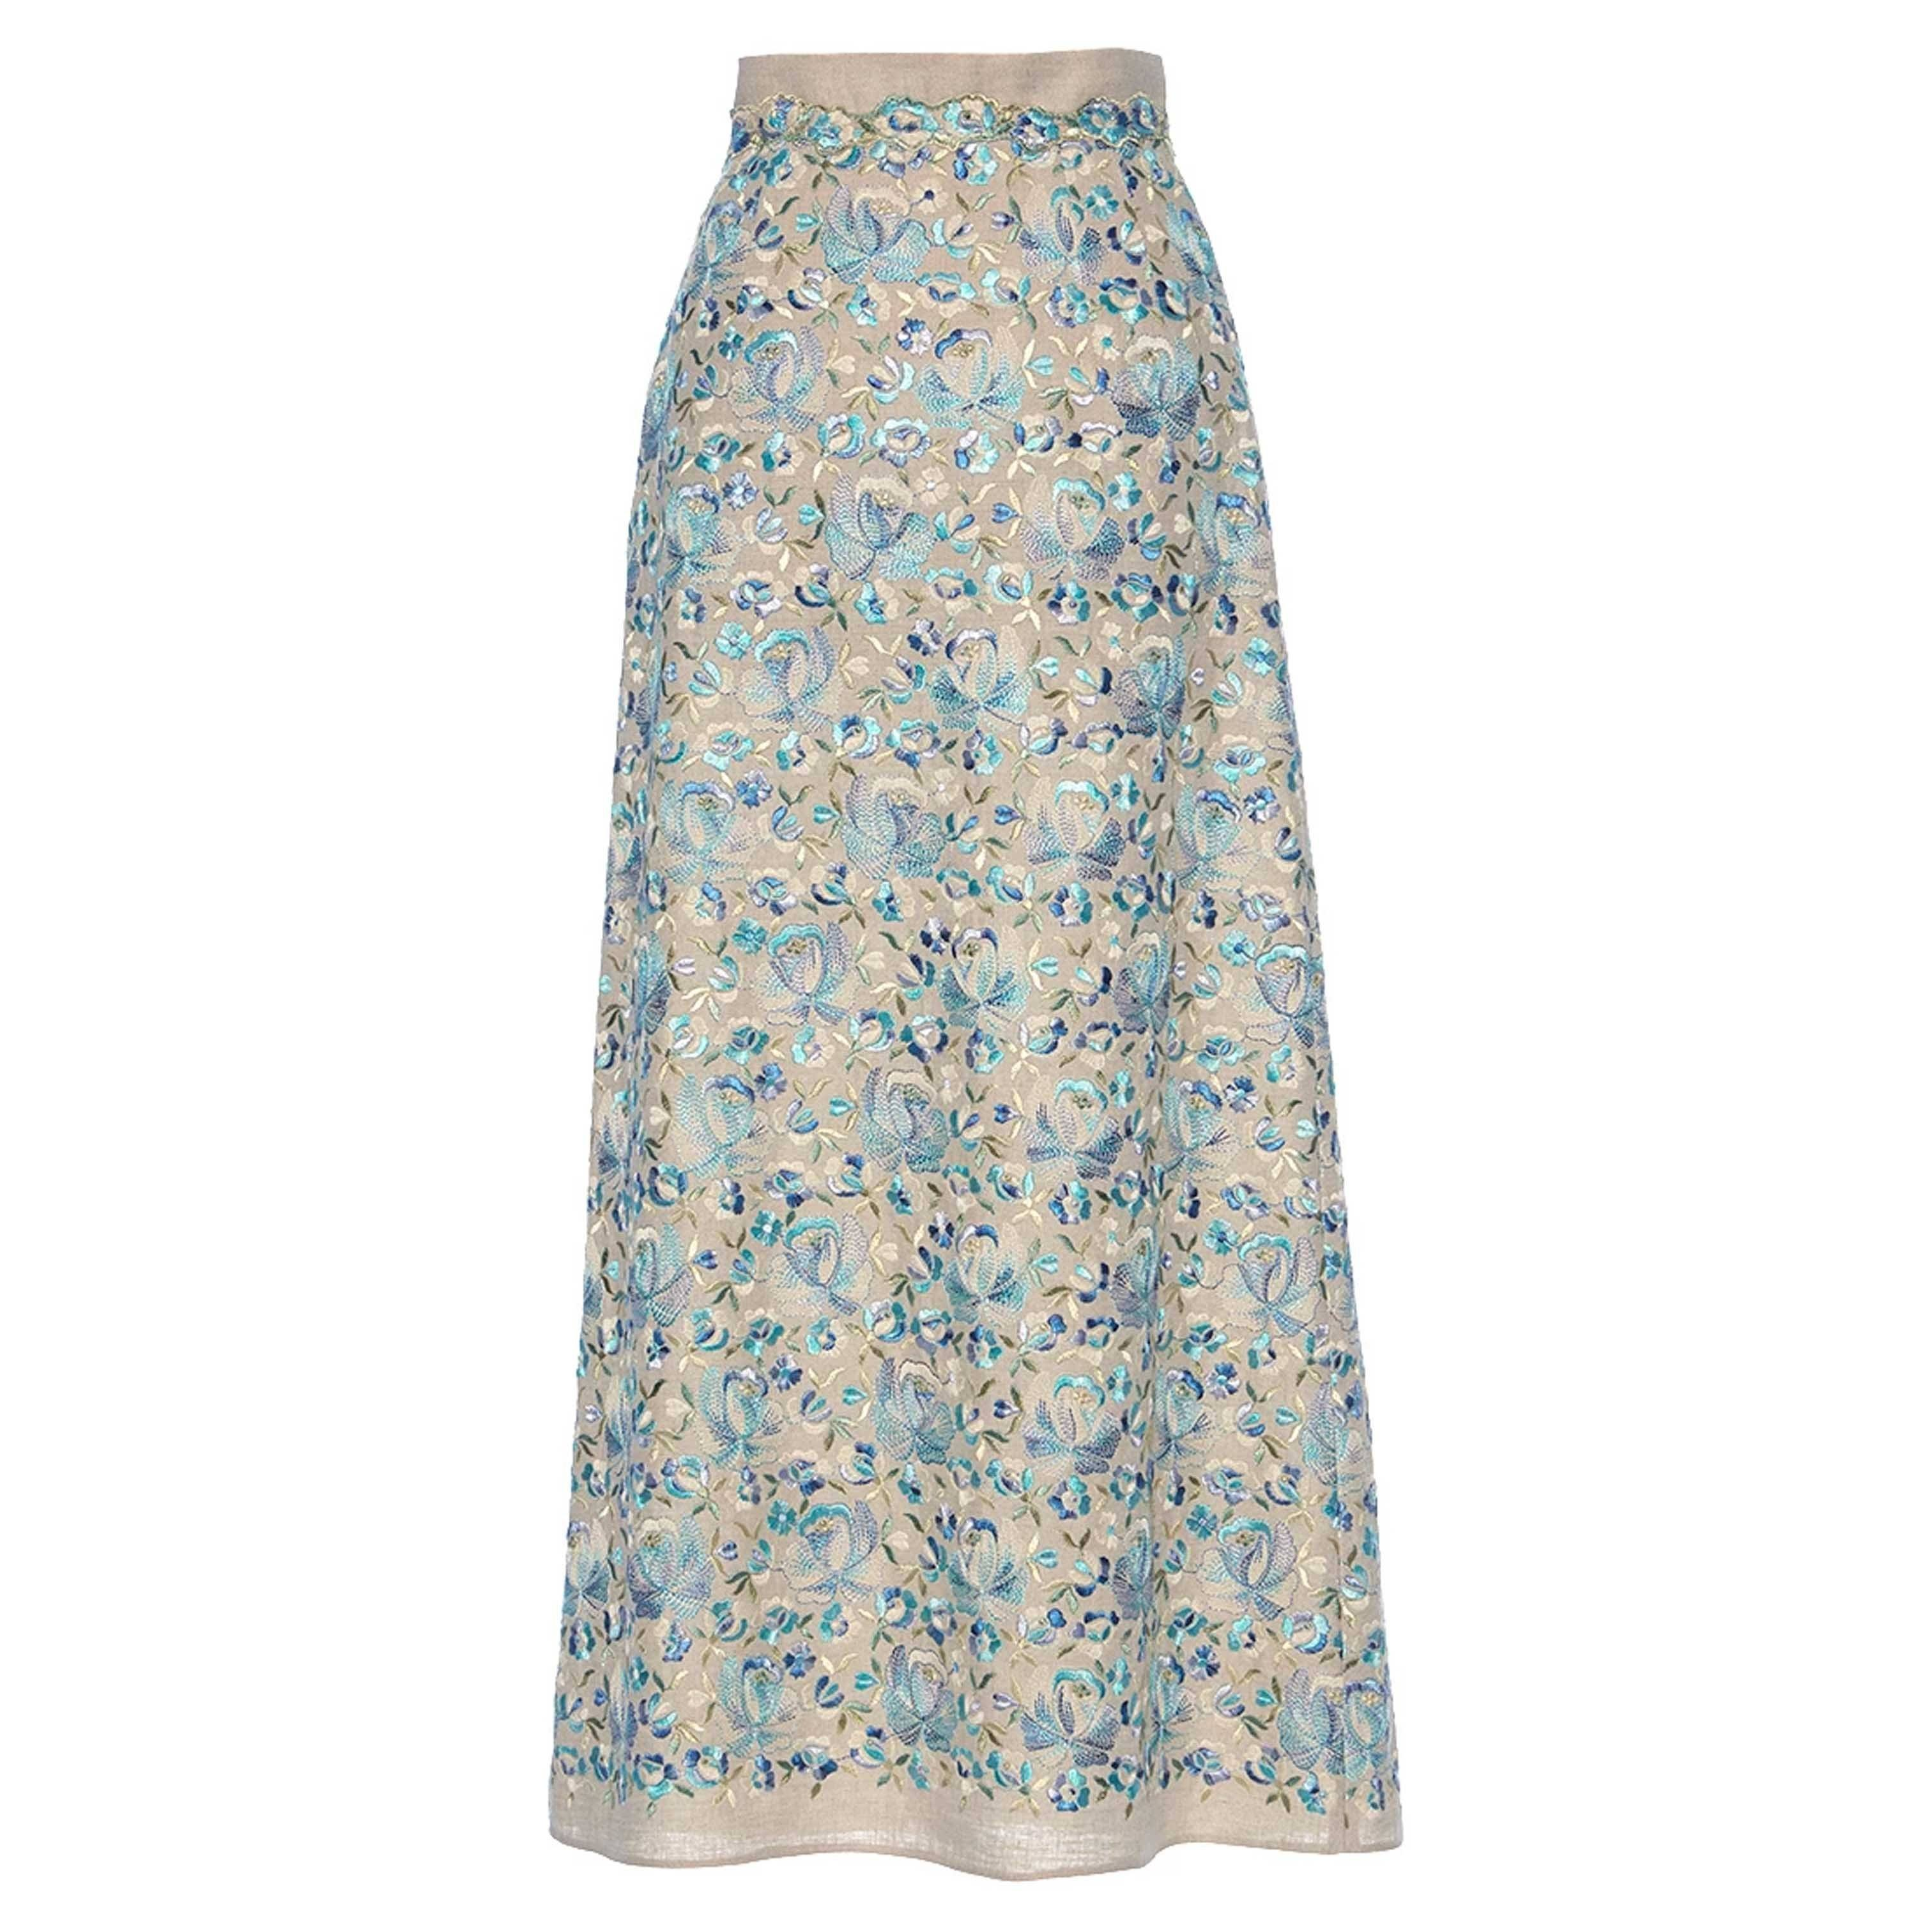 Luisa BeccariaLinen Embroidered Maxi Skirt